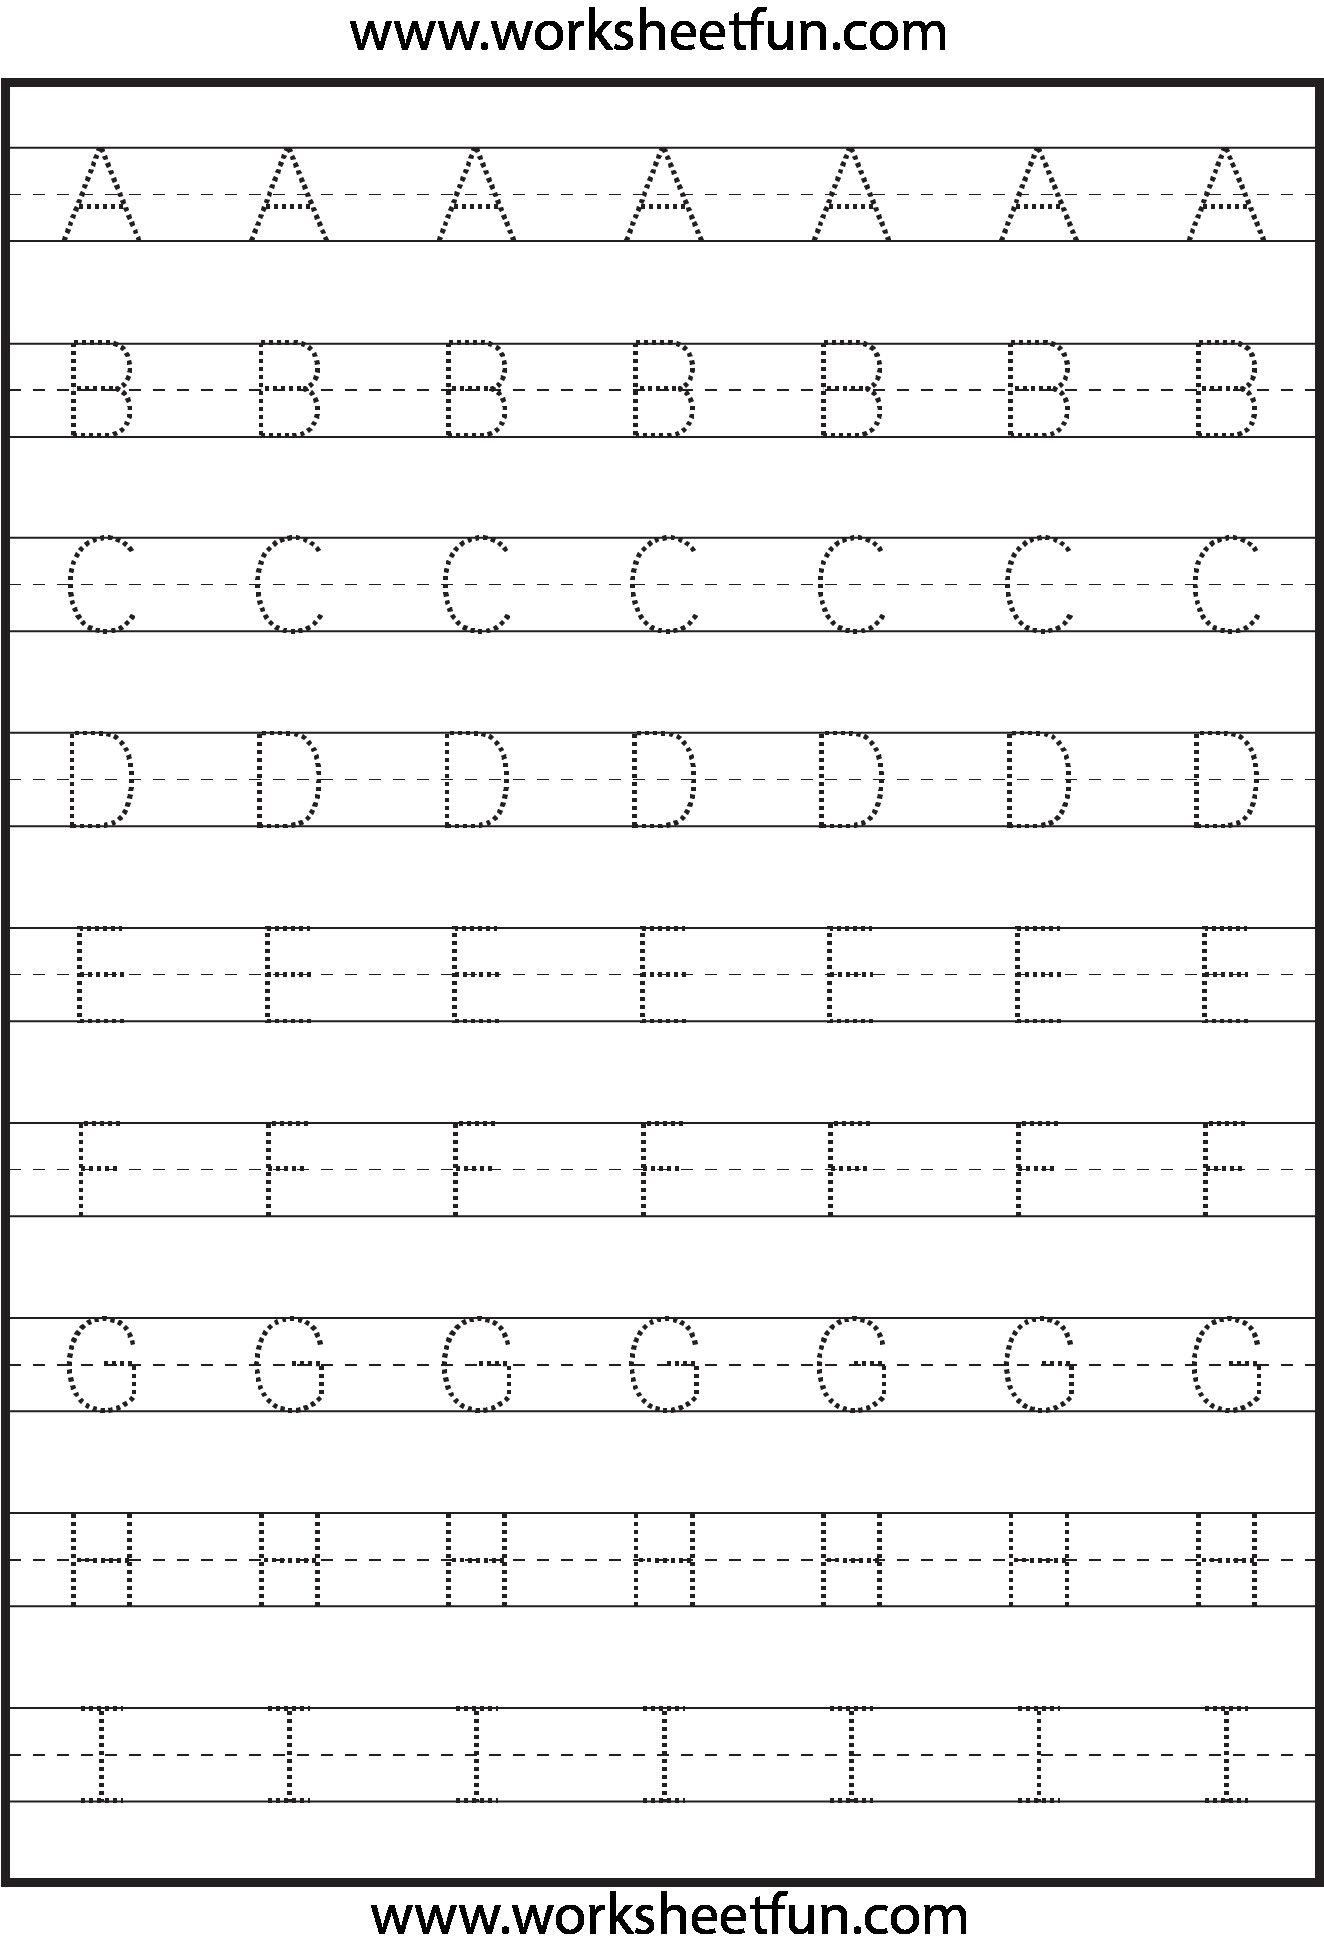 1 Capital Letter Worksheets In With Images